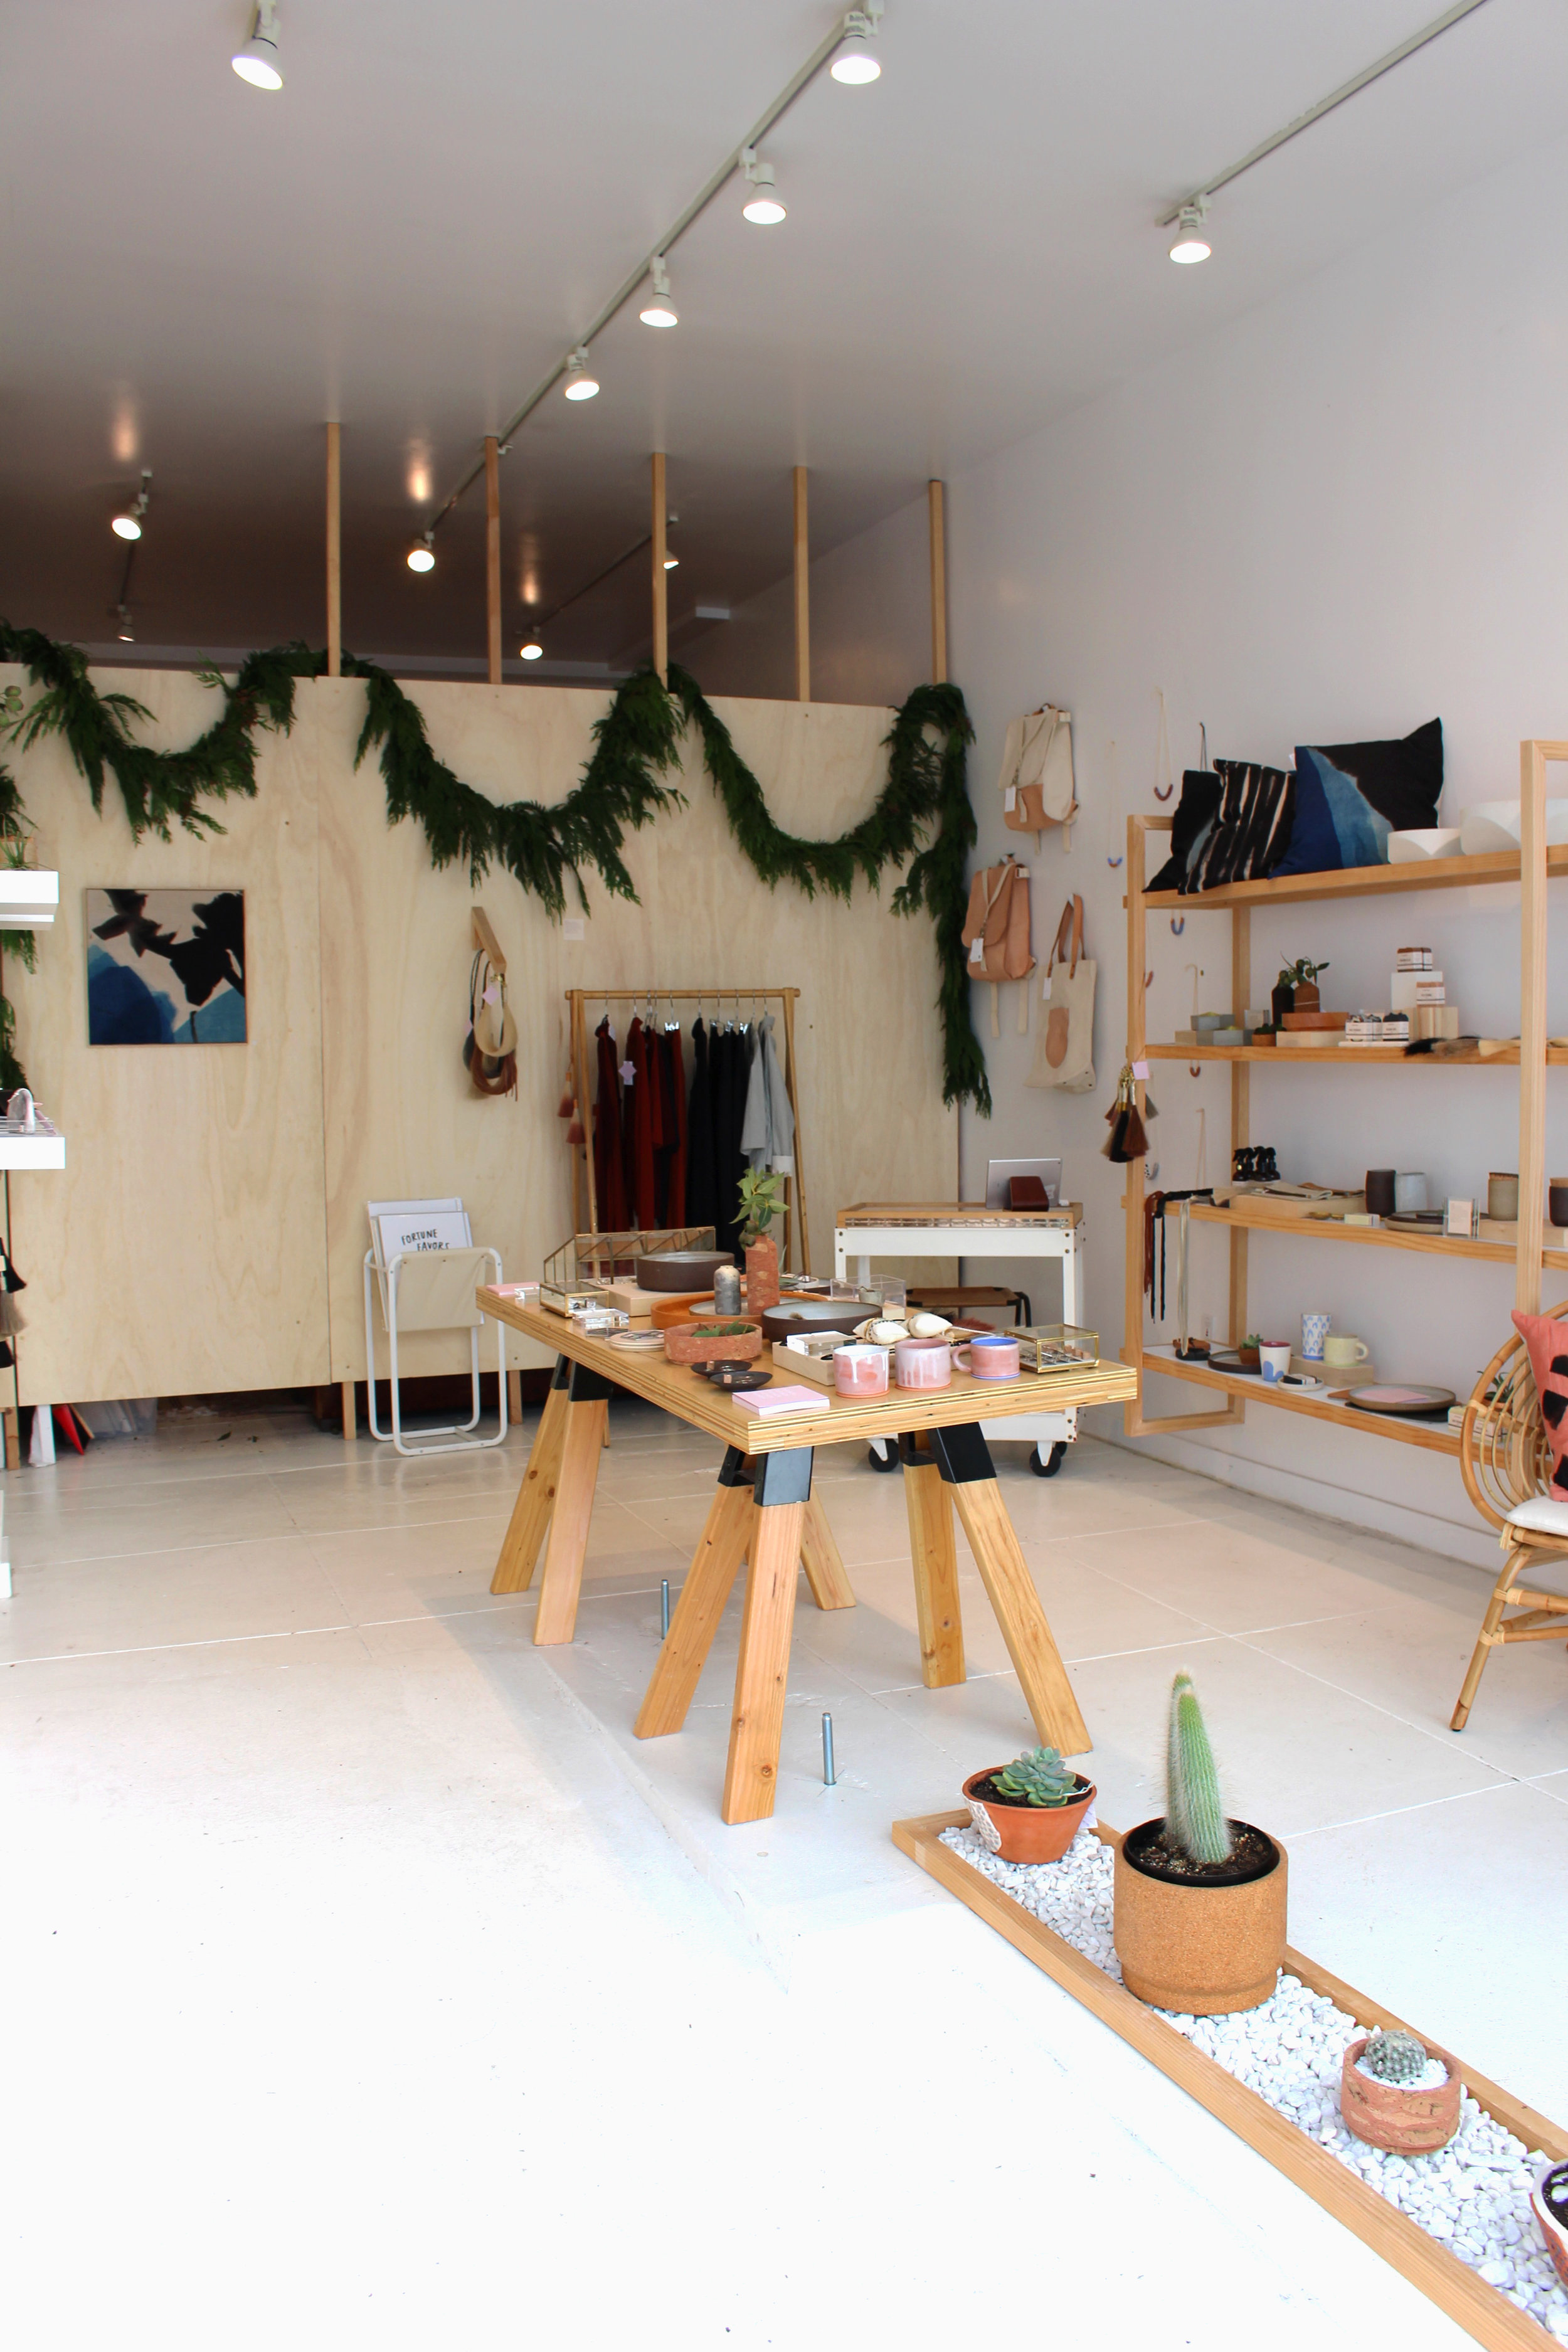 Entrance to the shop. You can see the tables and shelves full of goodies.